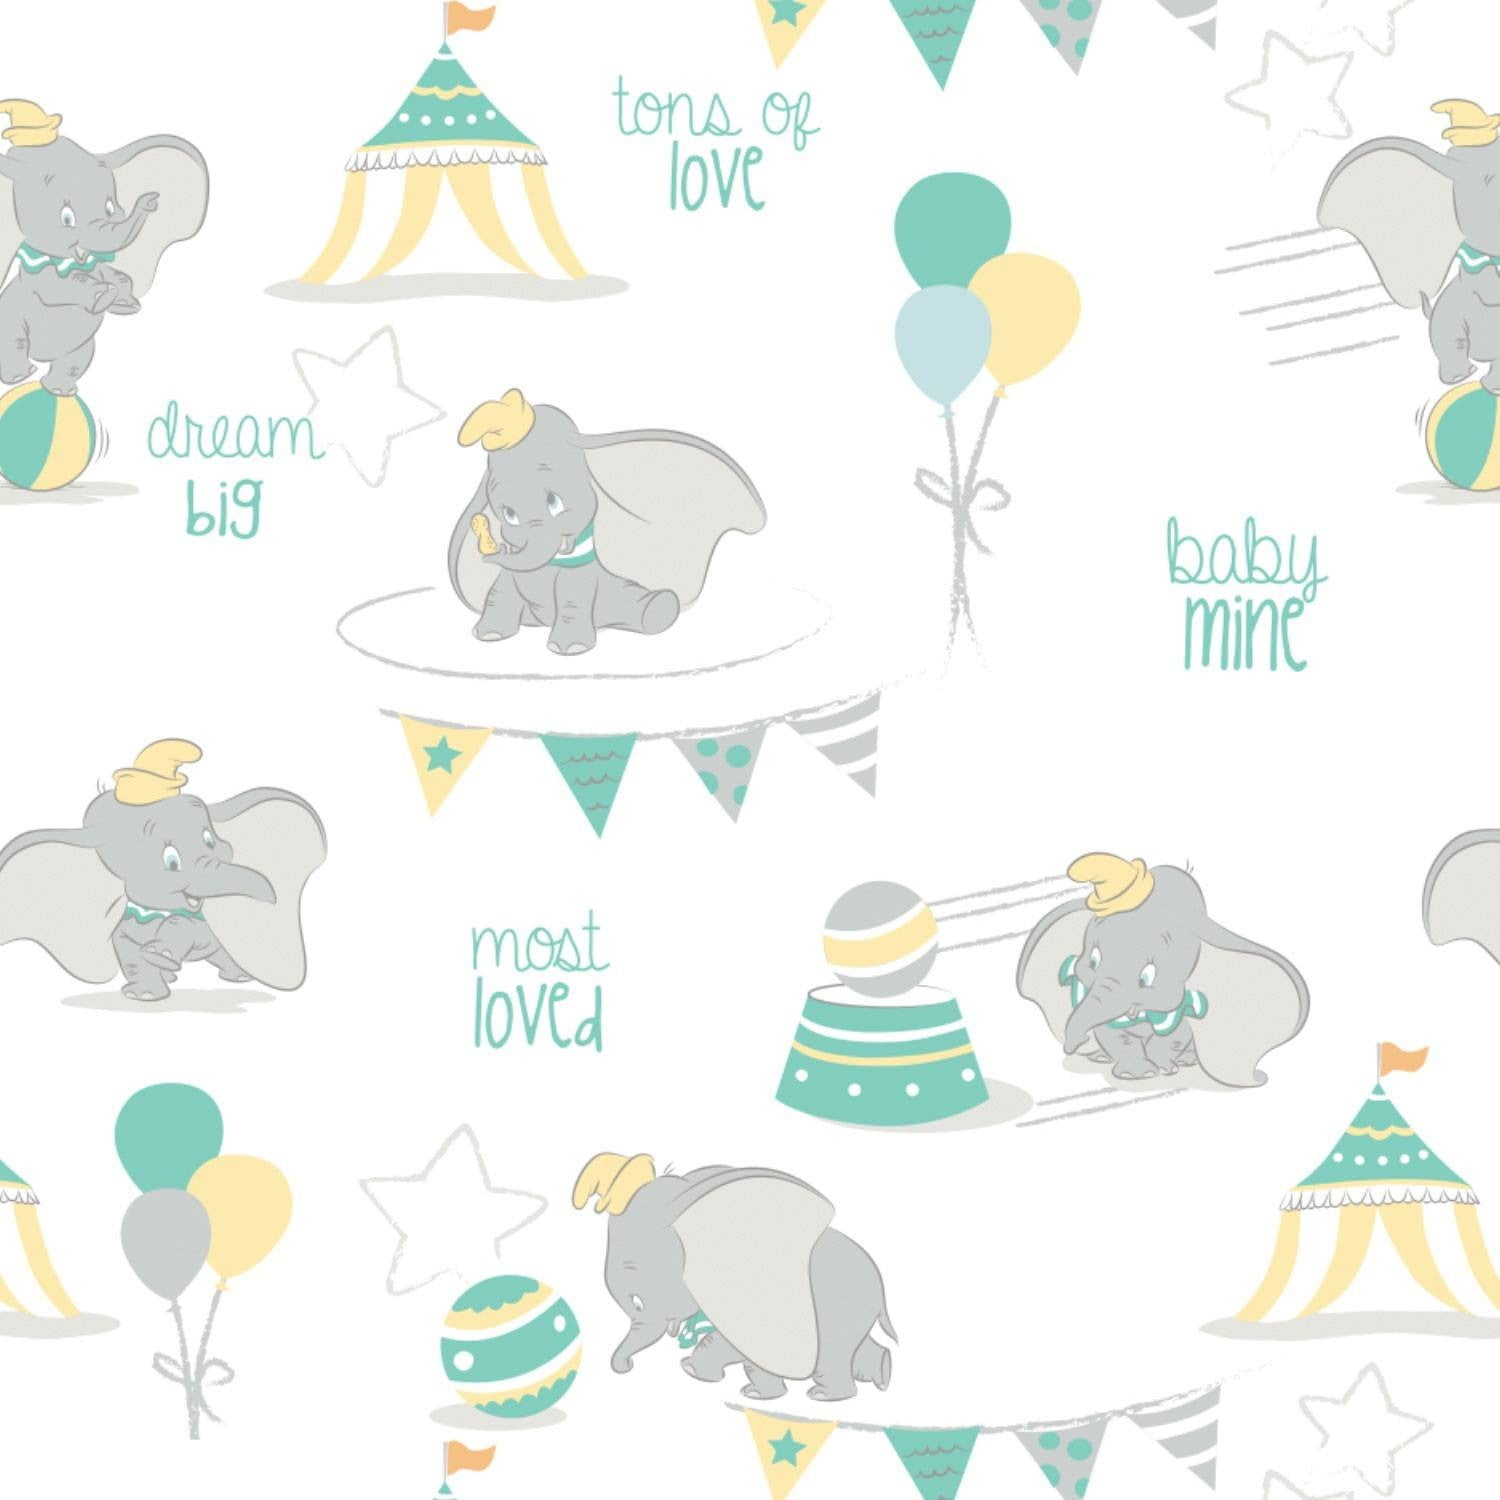 Disney Flannel - Dumbo